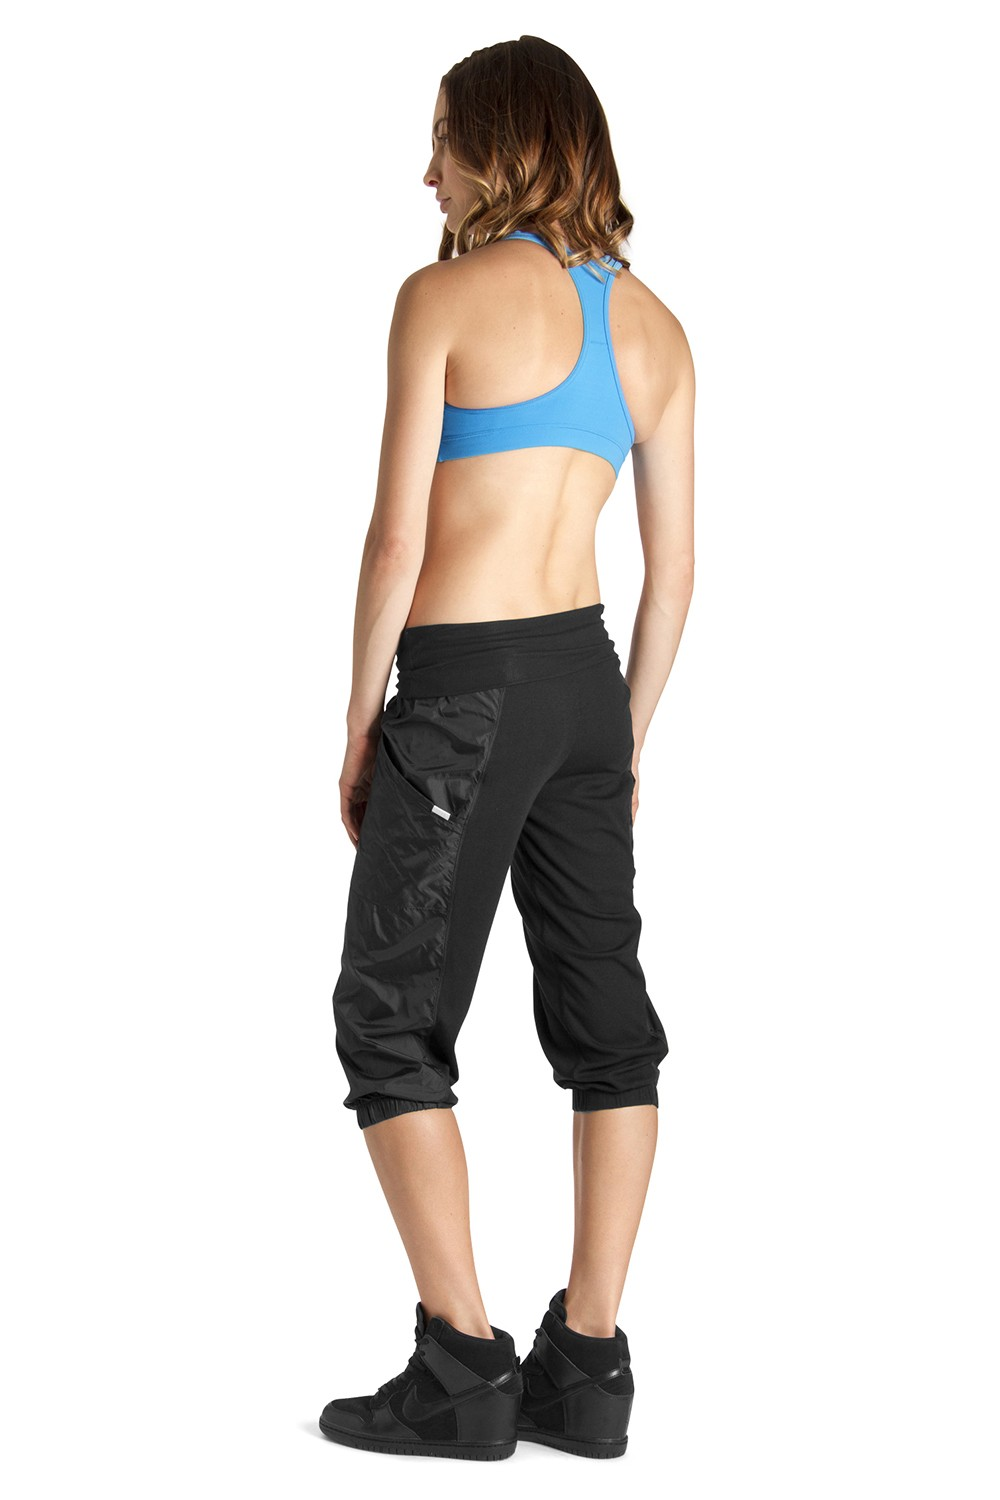 Rib Panel 3/4 Pant Women's Dance Pants